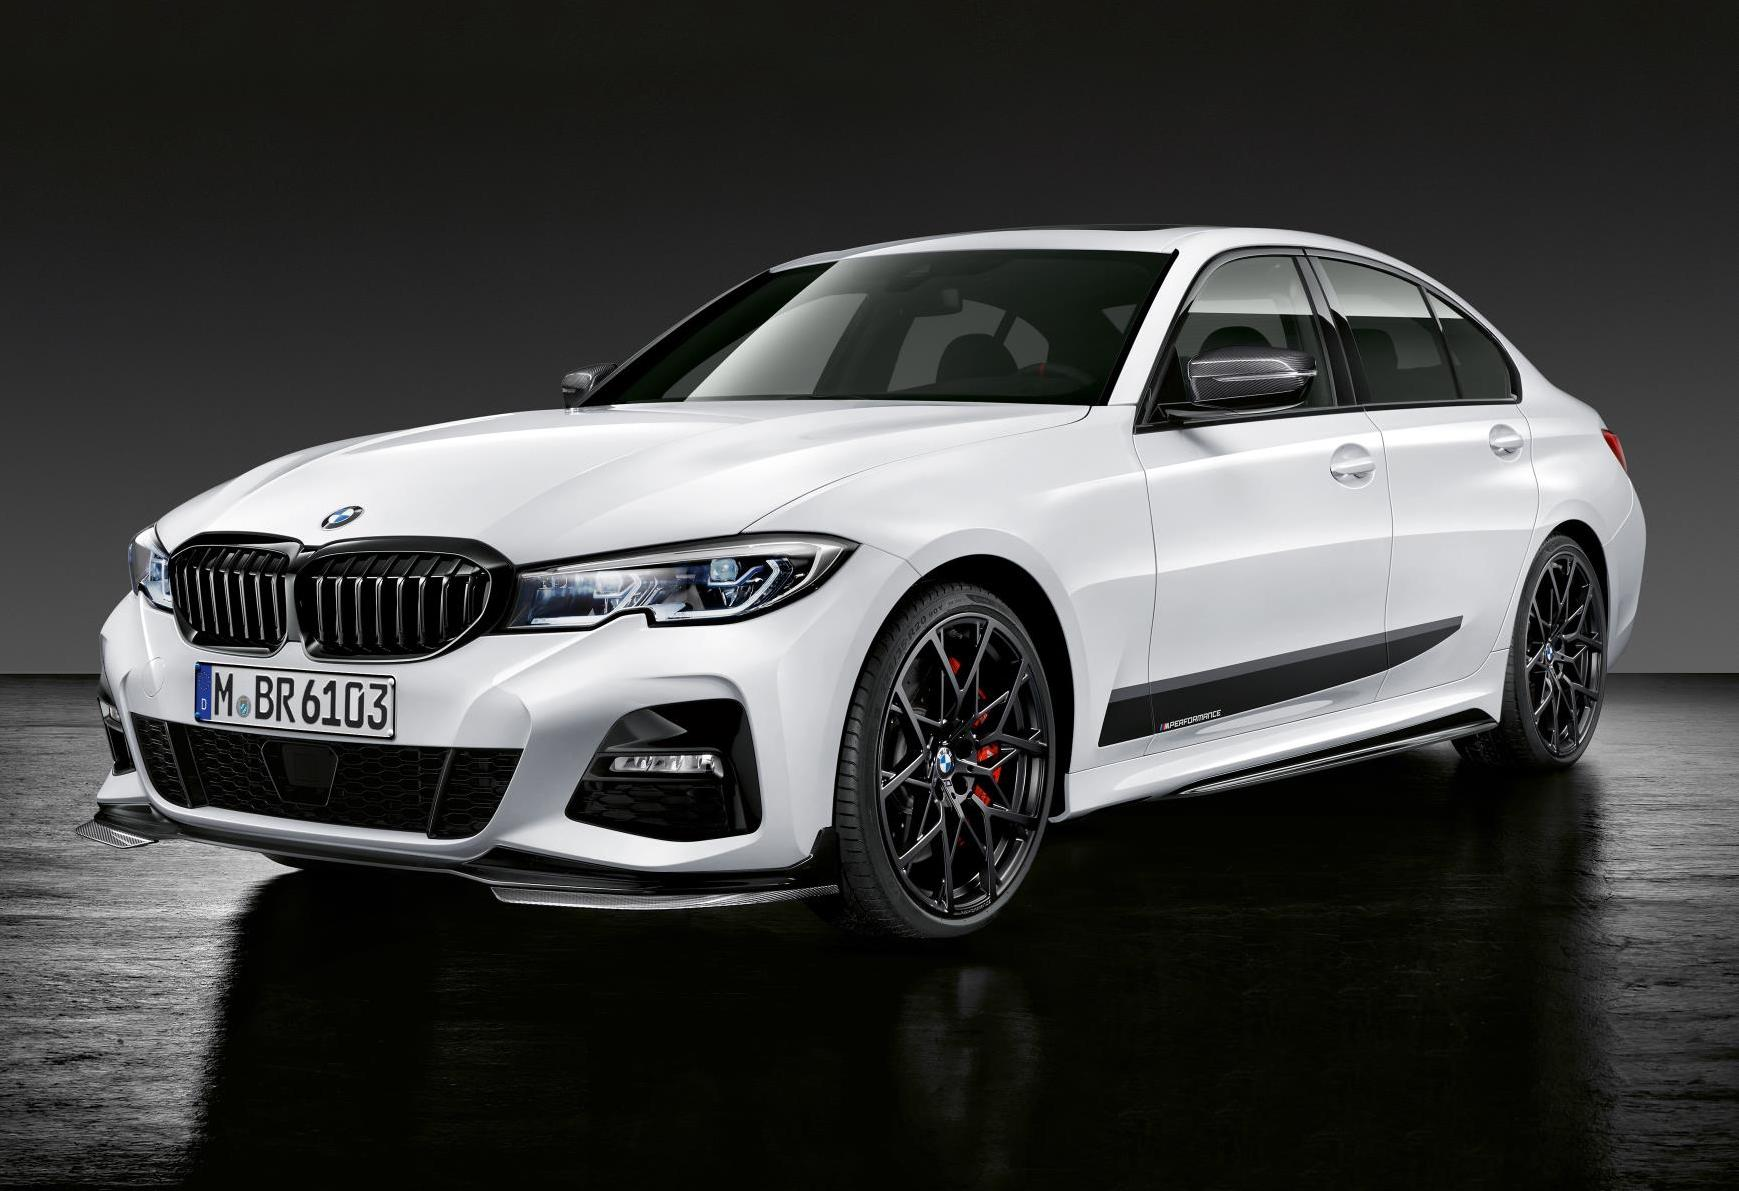 Bmw Reveals M Performance Parts For G20 3 Series Performancedrive